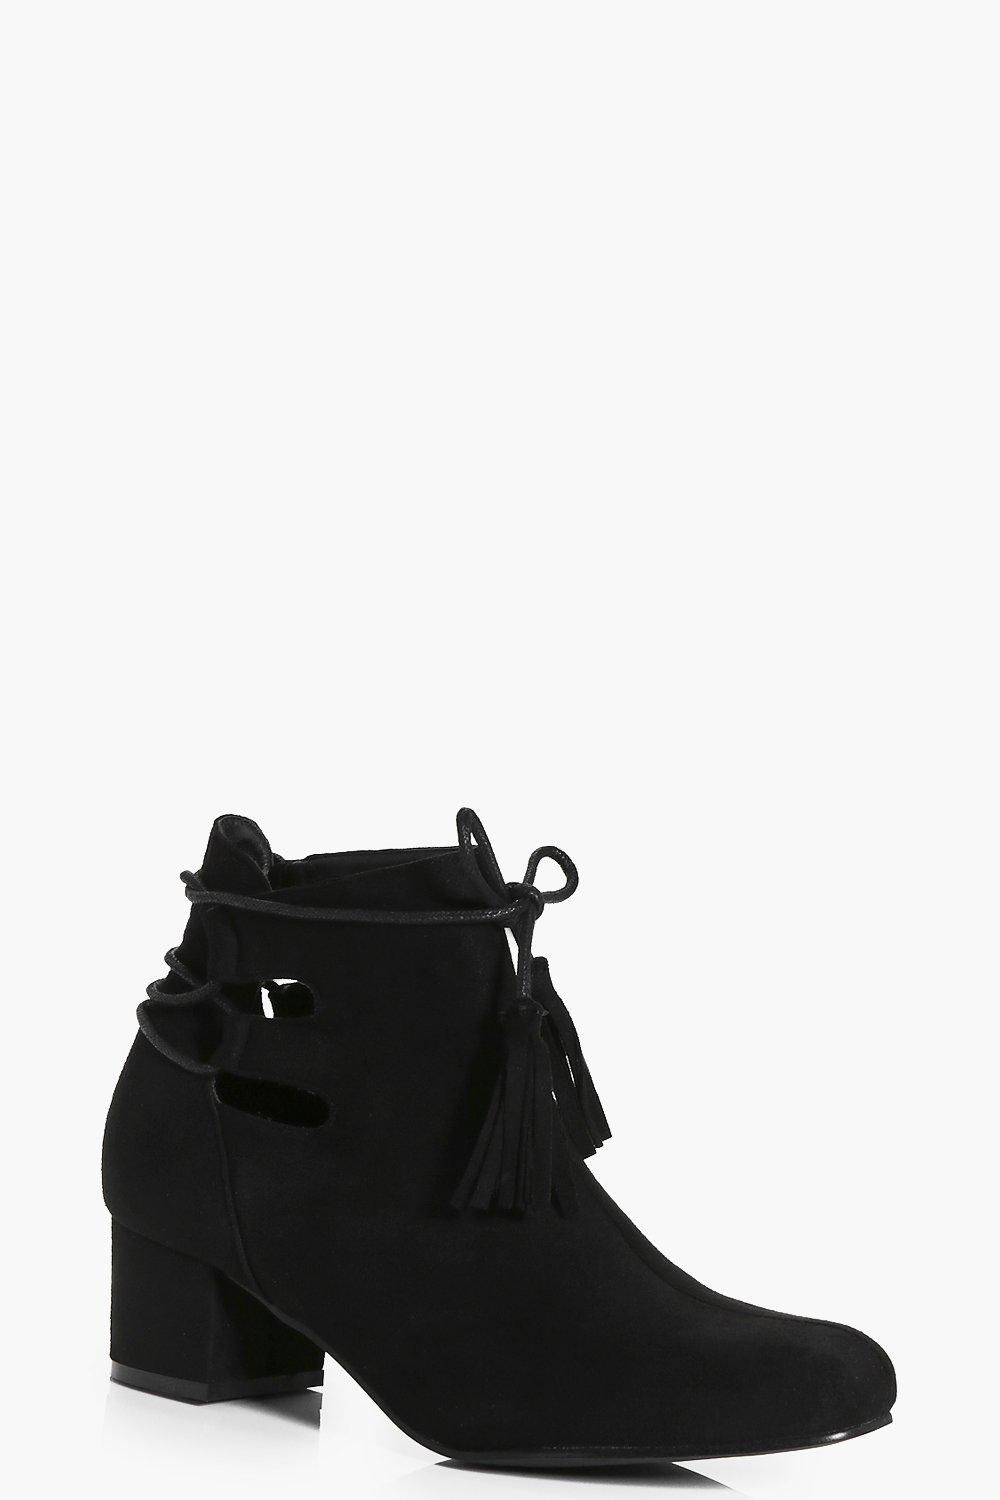 Jemima Lace Back Low Block Heel Boot